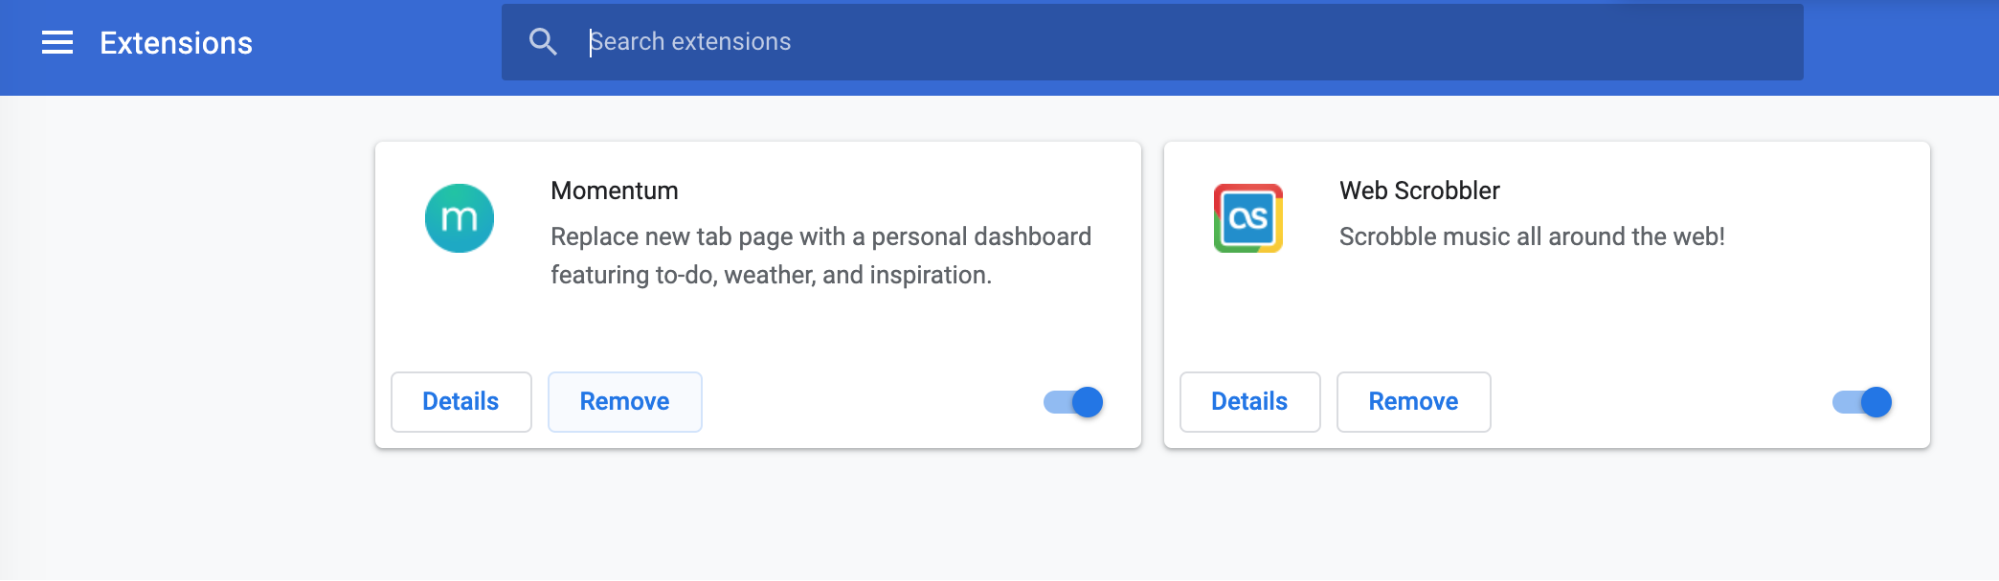 remove button in extensions tab in chrome